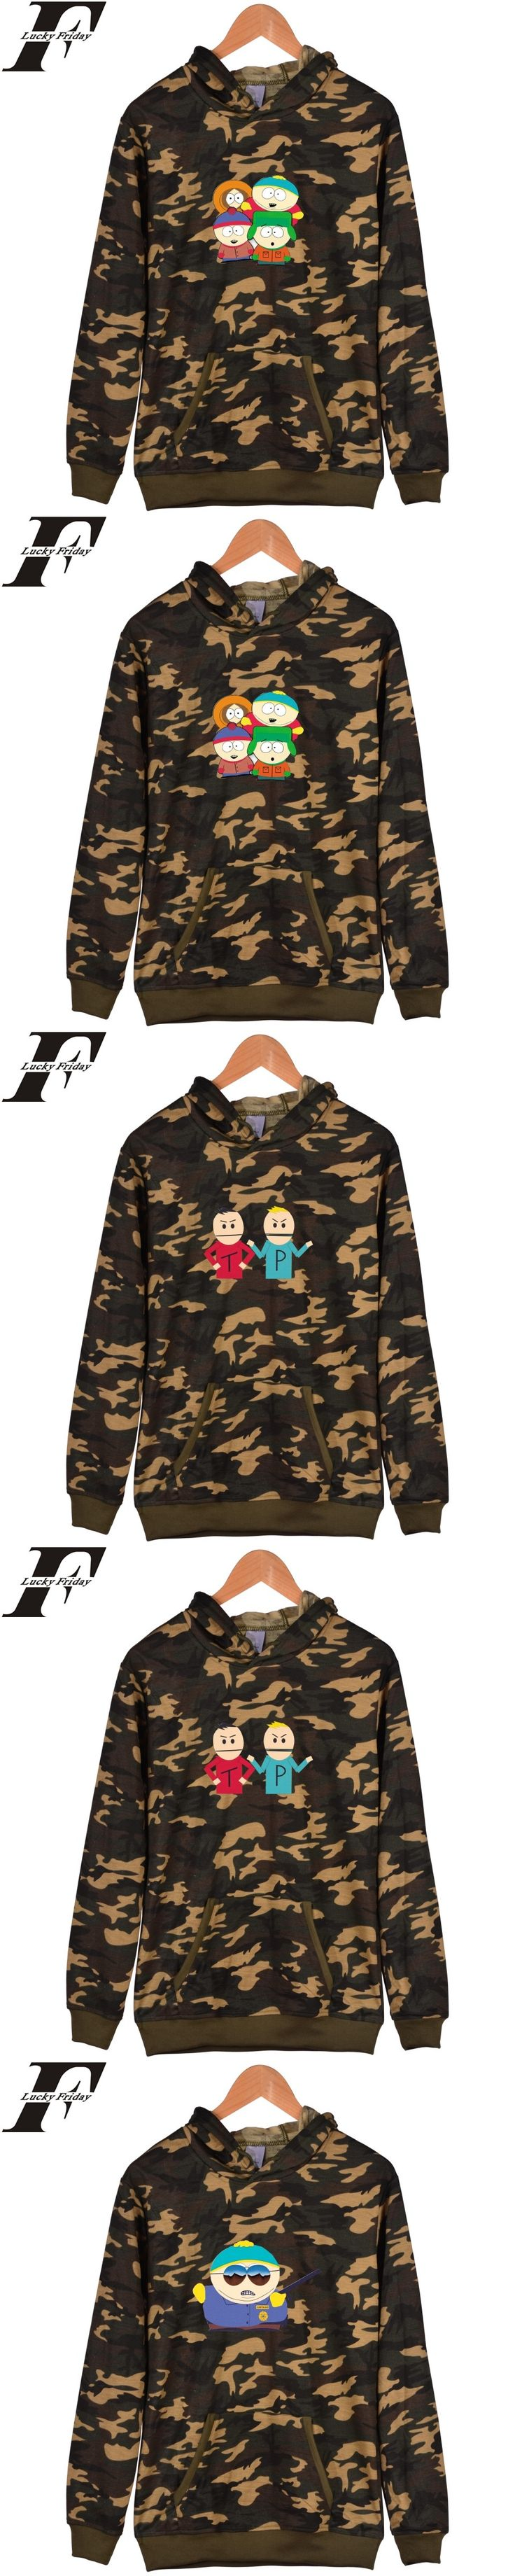 LUCKYFRIDAYF Hot Sale South Park Camouflage Hoodies Harajuku Mens Sweatshirt And South Park Cartoon Battle Fatigues Sweatshirts